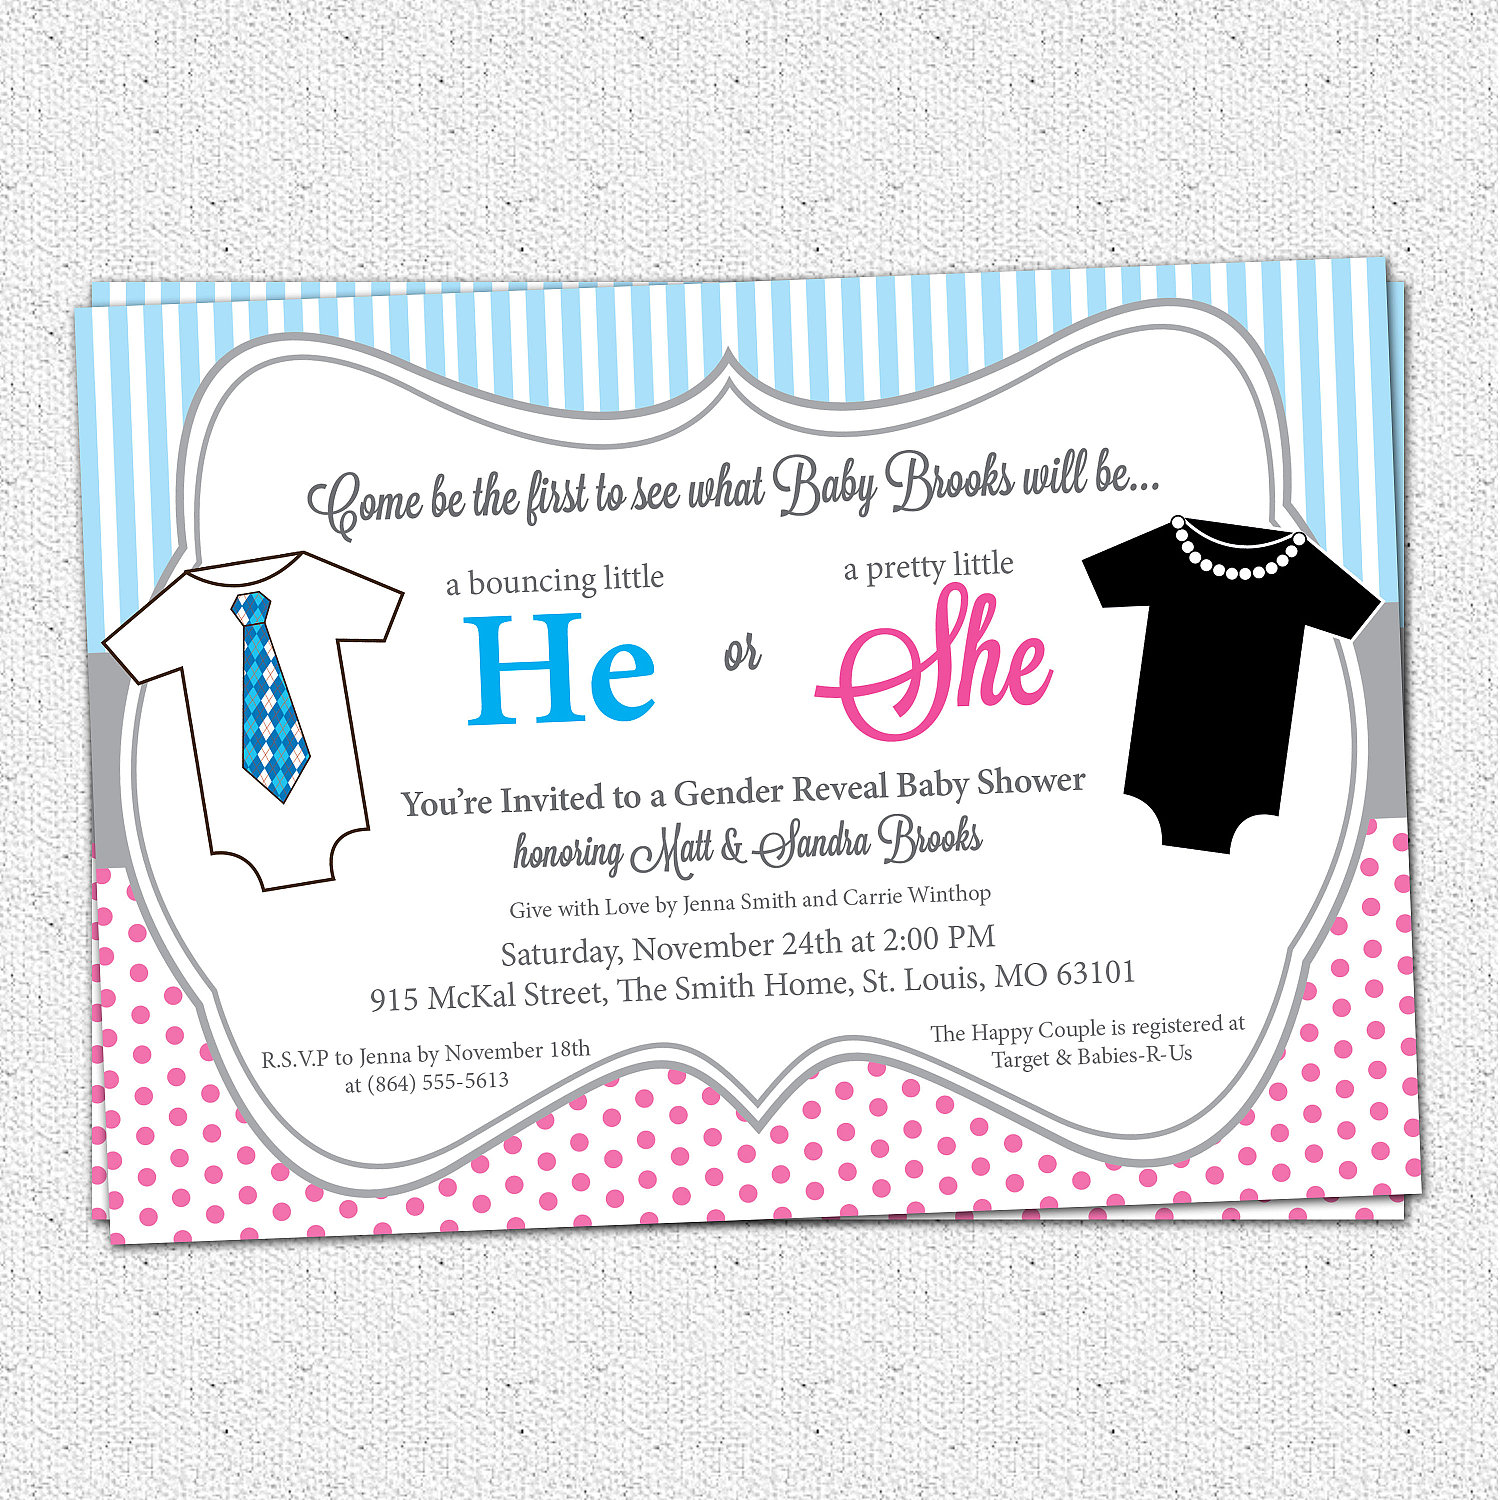 Invigorating Gender Reveal Baby Shower Invitations Gender Reveal Baby Shower Invitations Gender Reveal Invitations Gender Reveal Invitations Prince Or Princess invitations Gender Reveal Invitations